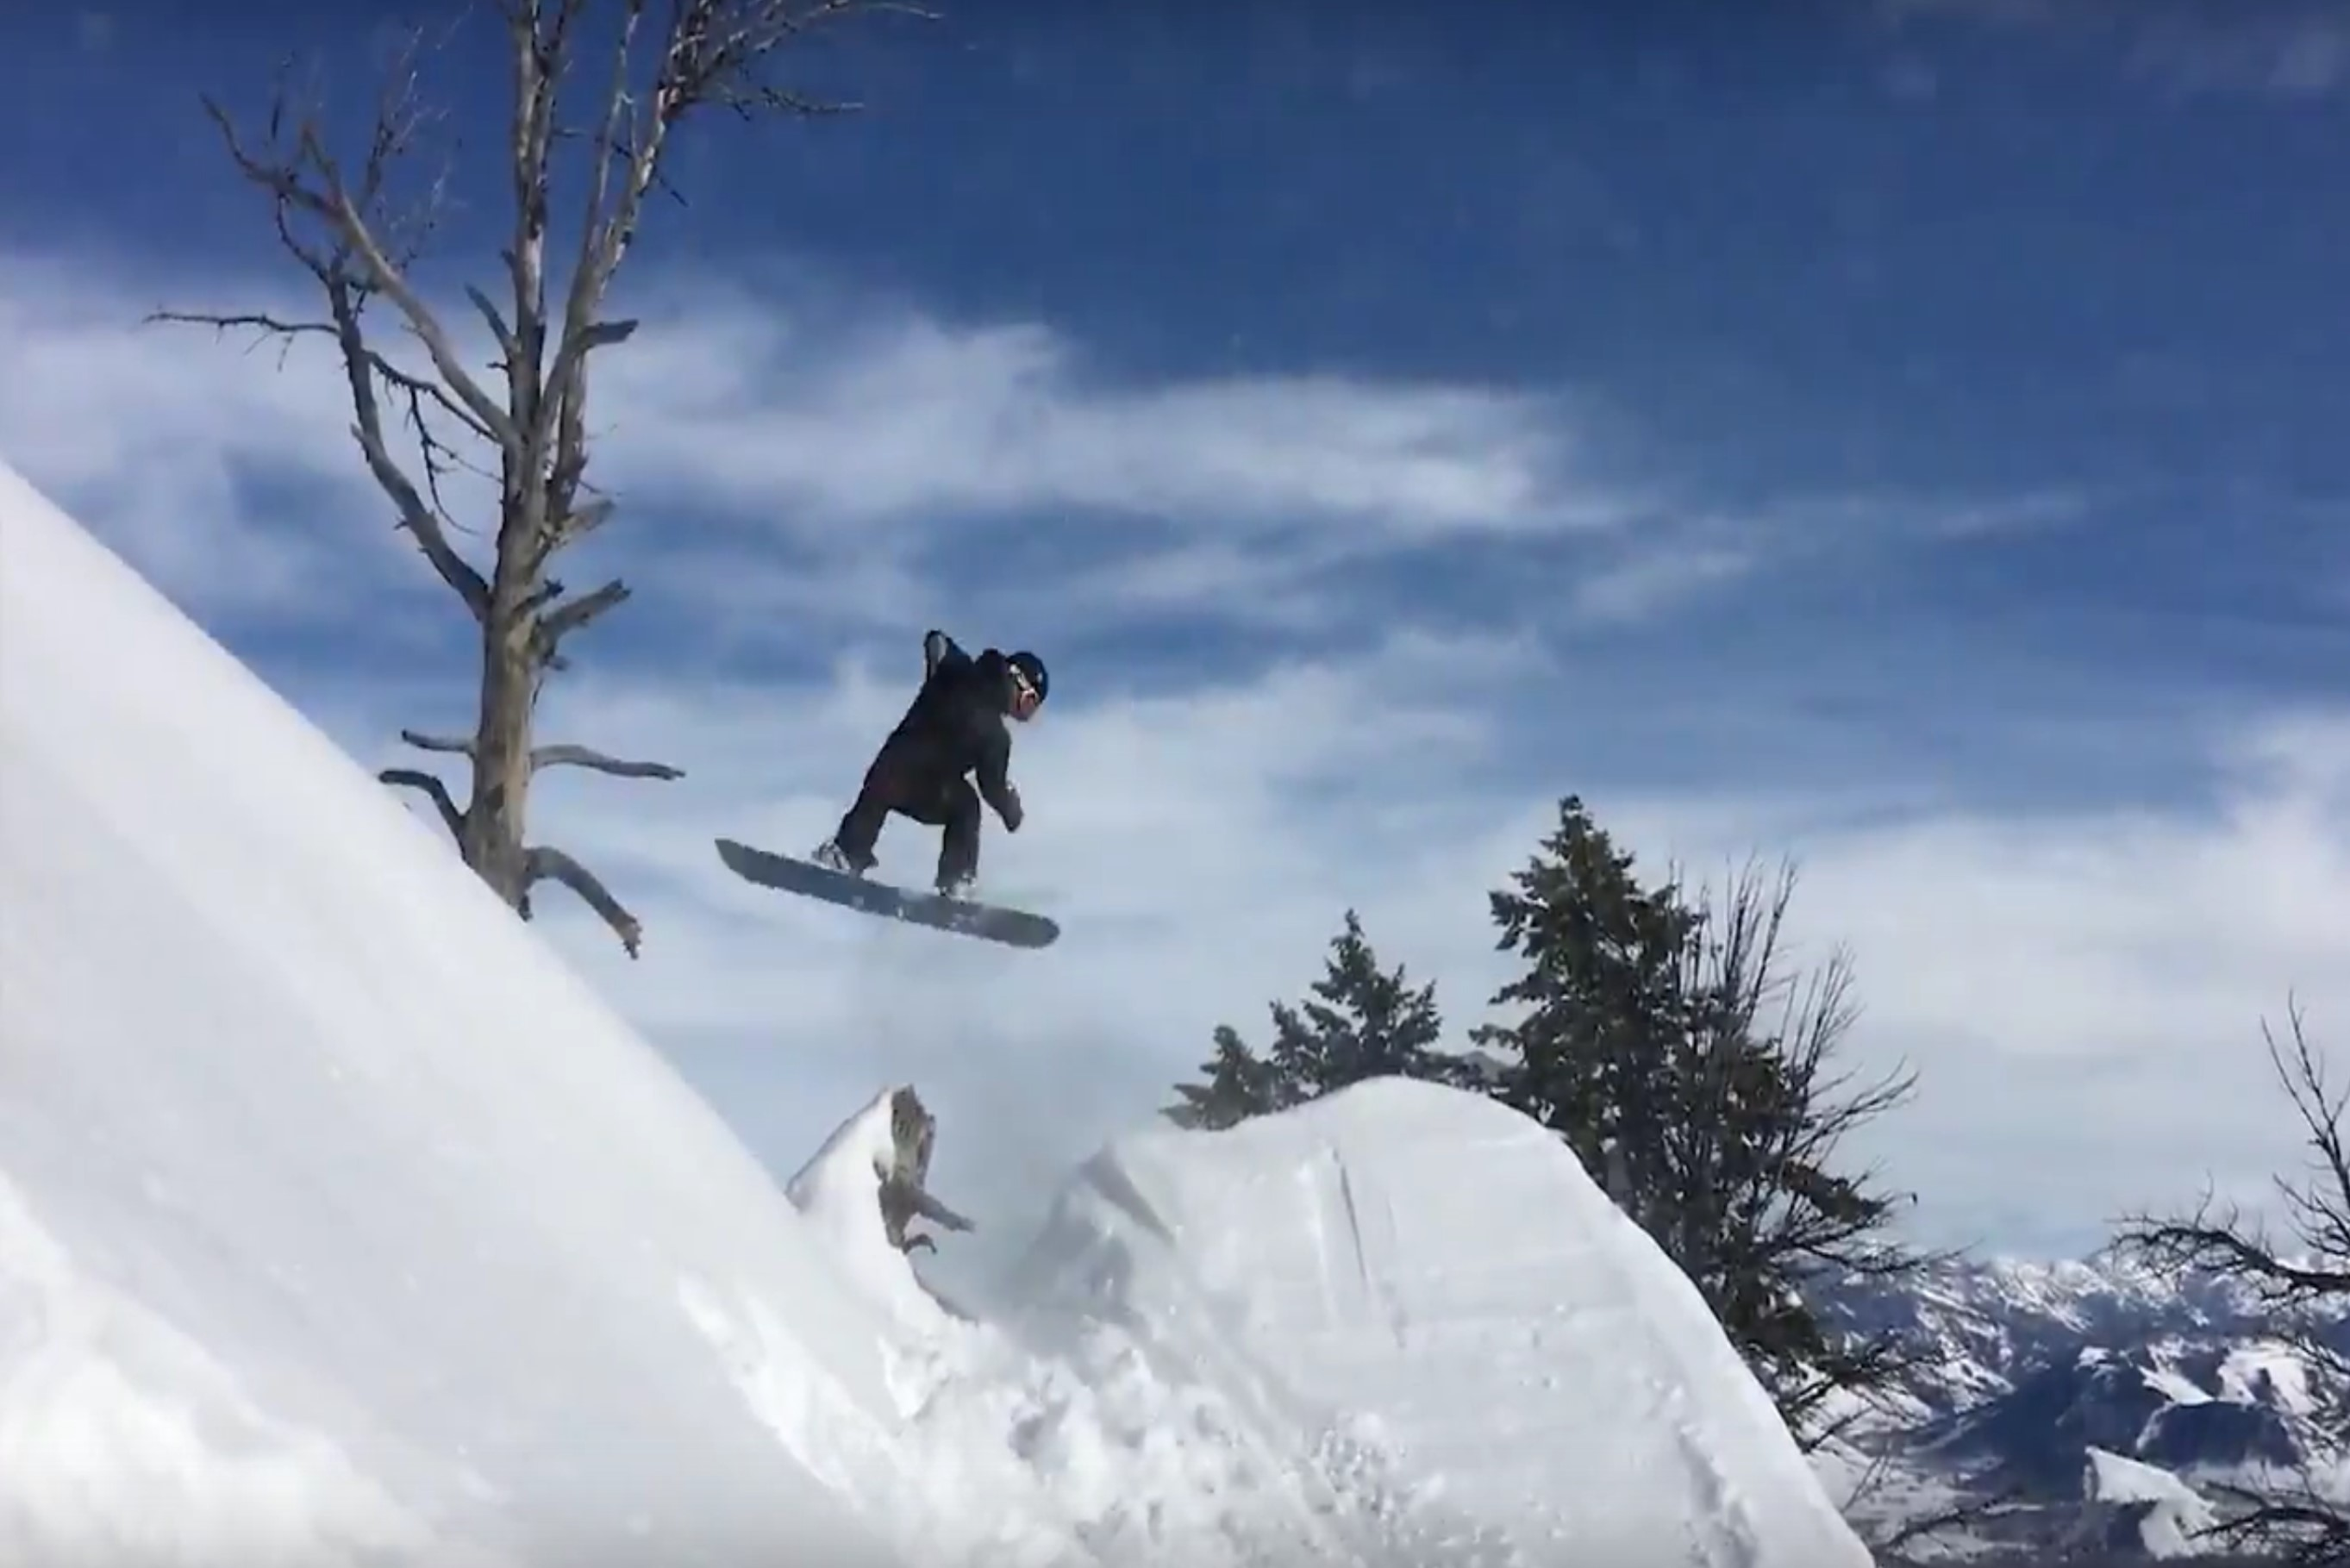 Hunter Swanson working on a secret rotation on a backcountry booter